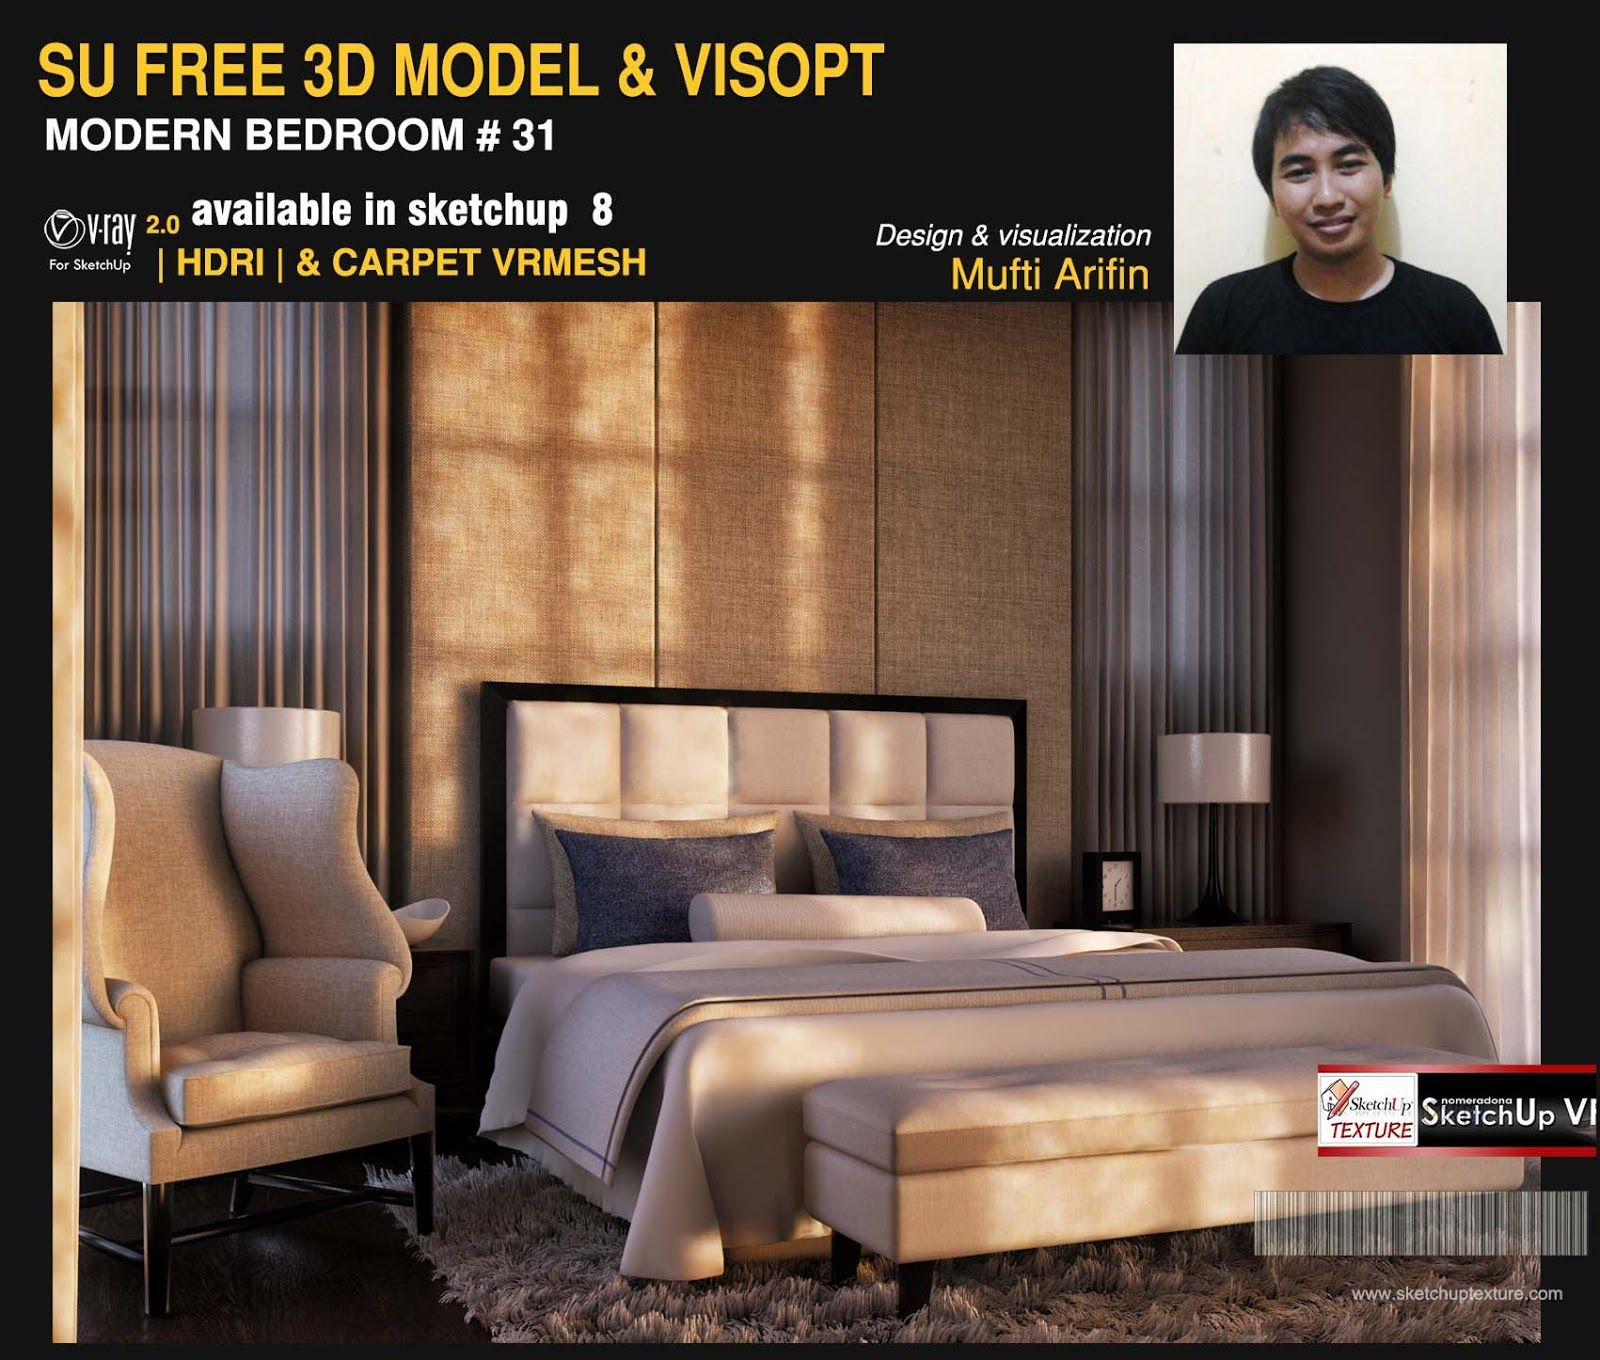 sketchup free 3d model bedroom 31 and